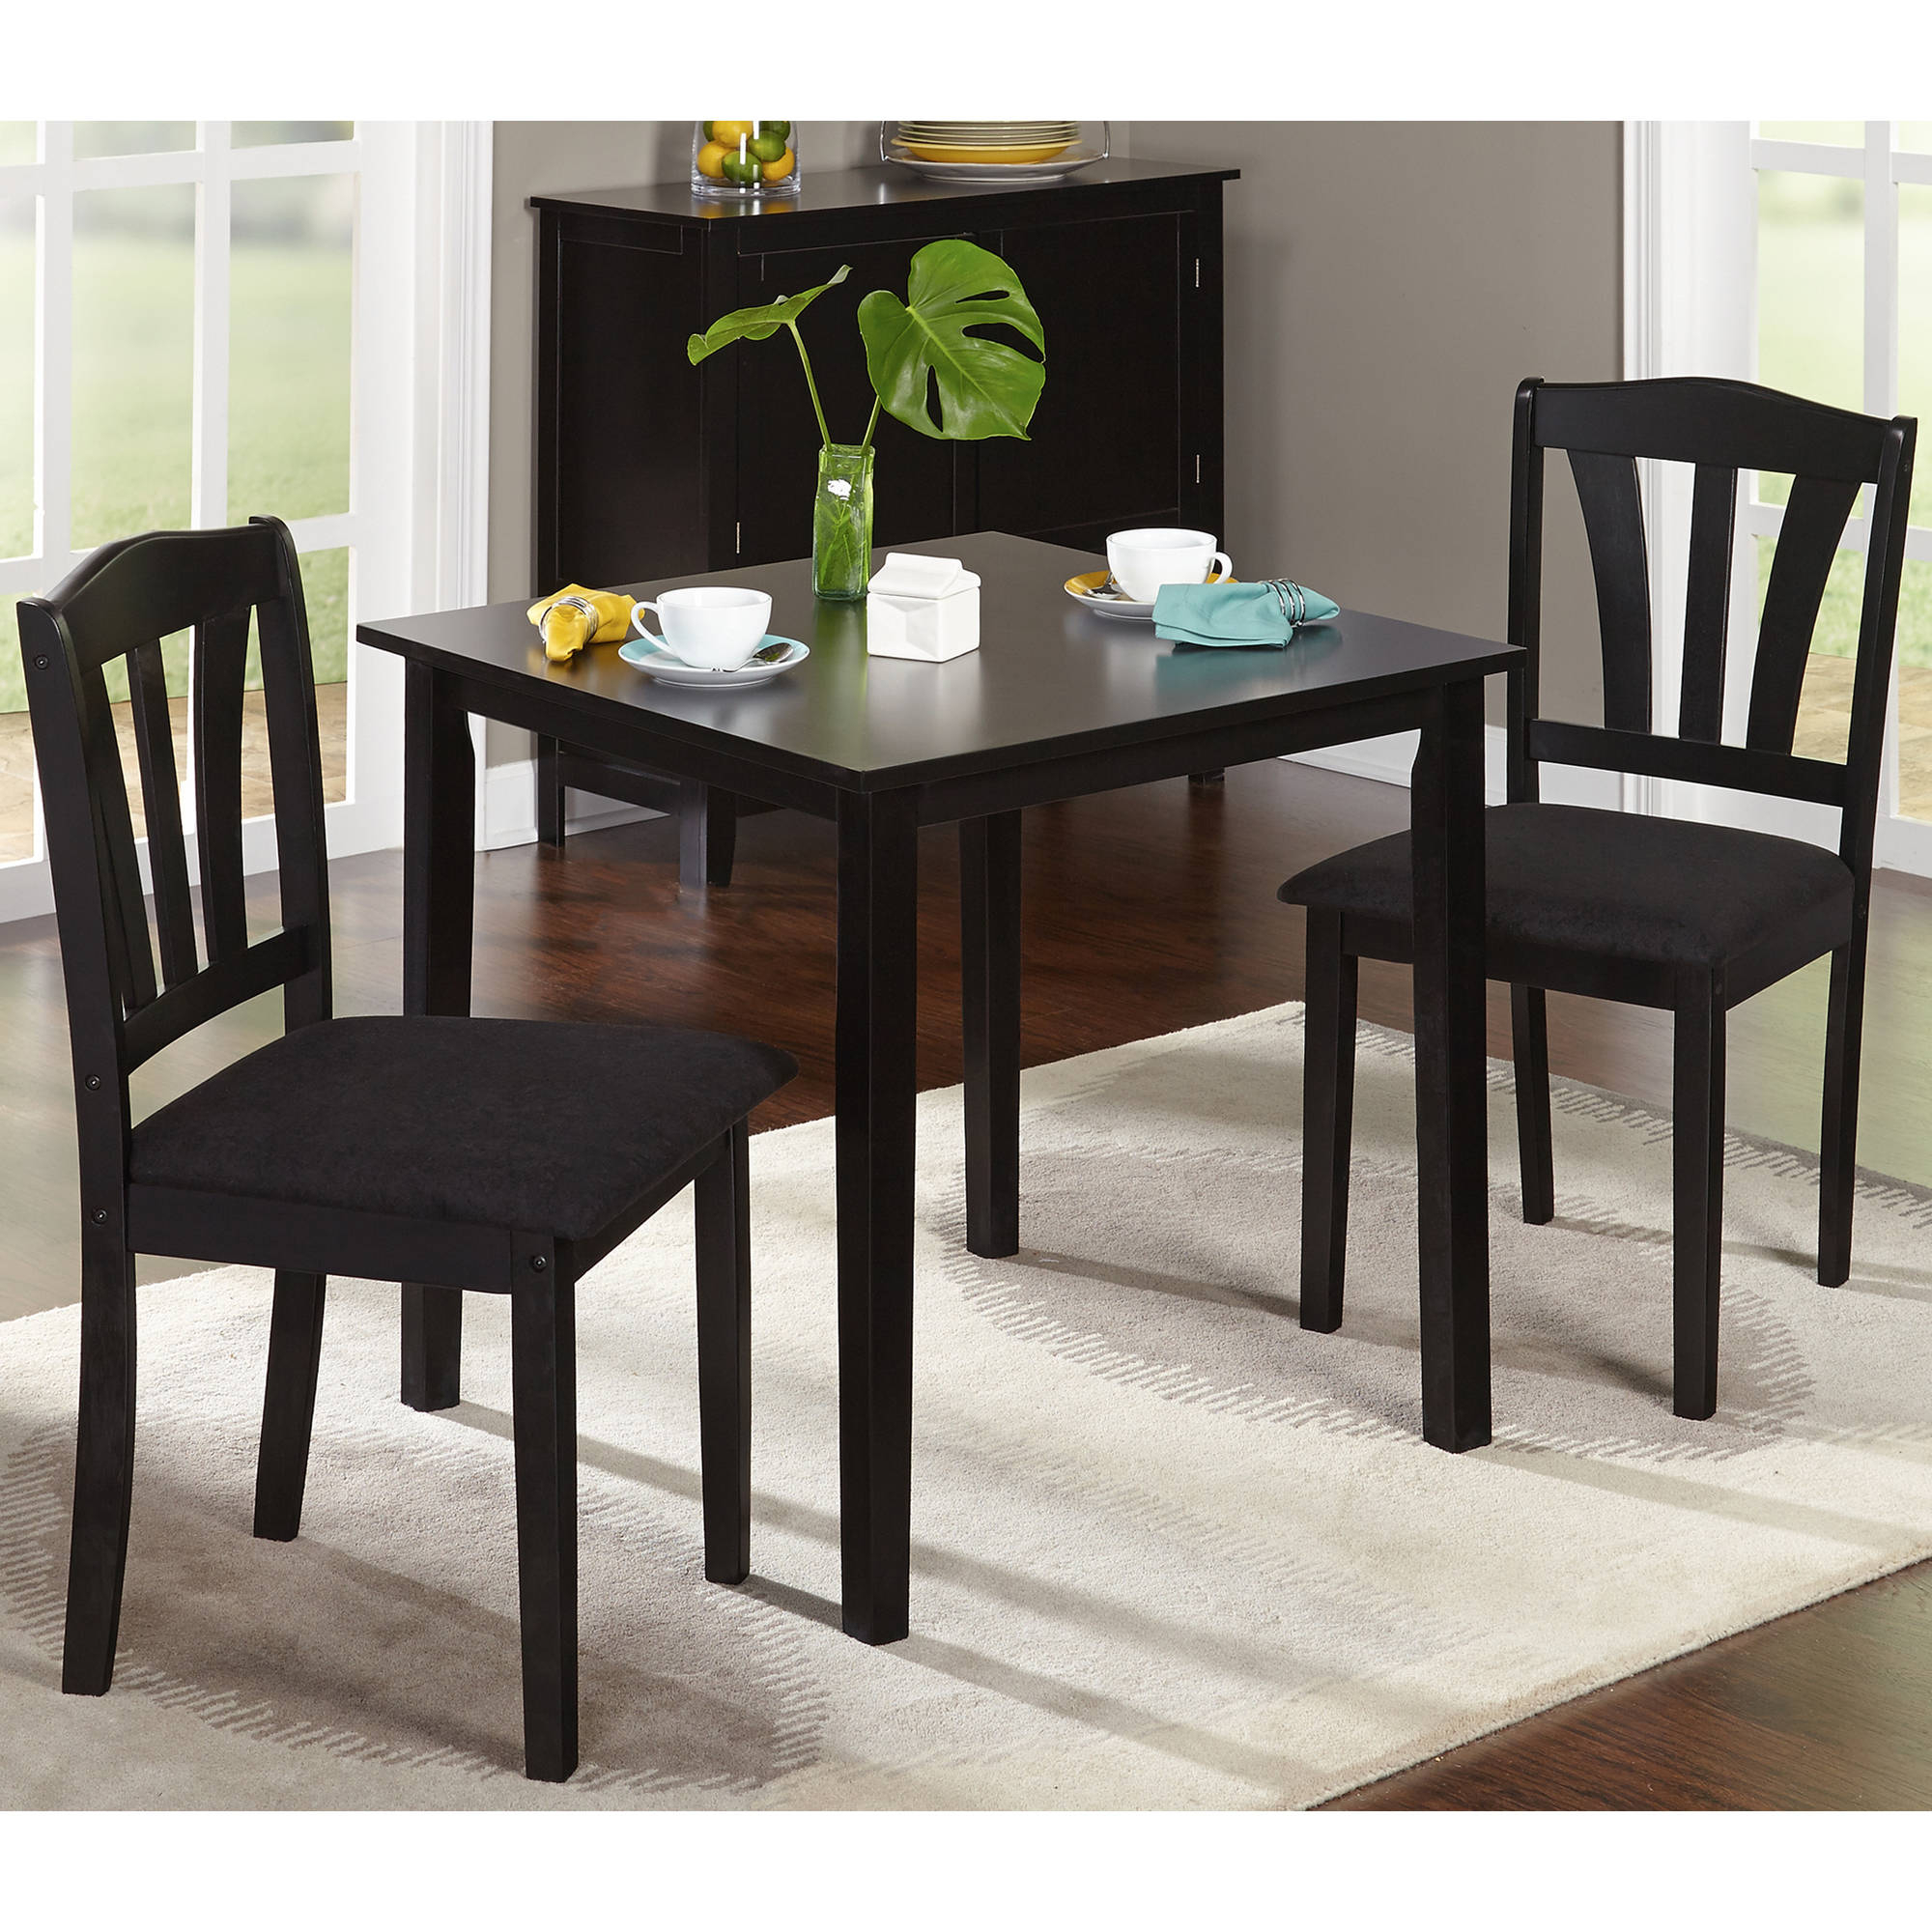 3 Piece Breakfast Dining Sets Within Well Liked Metropolitan 3 Piece Dining Set, Multiple Finishes – Walmart (View 12 of 25)